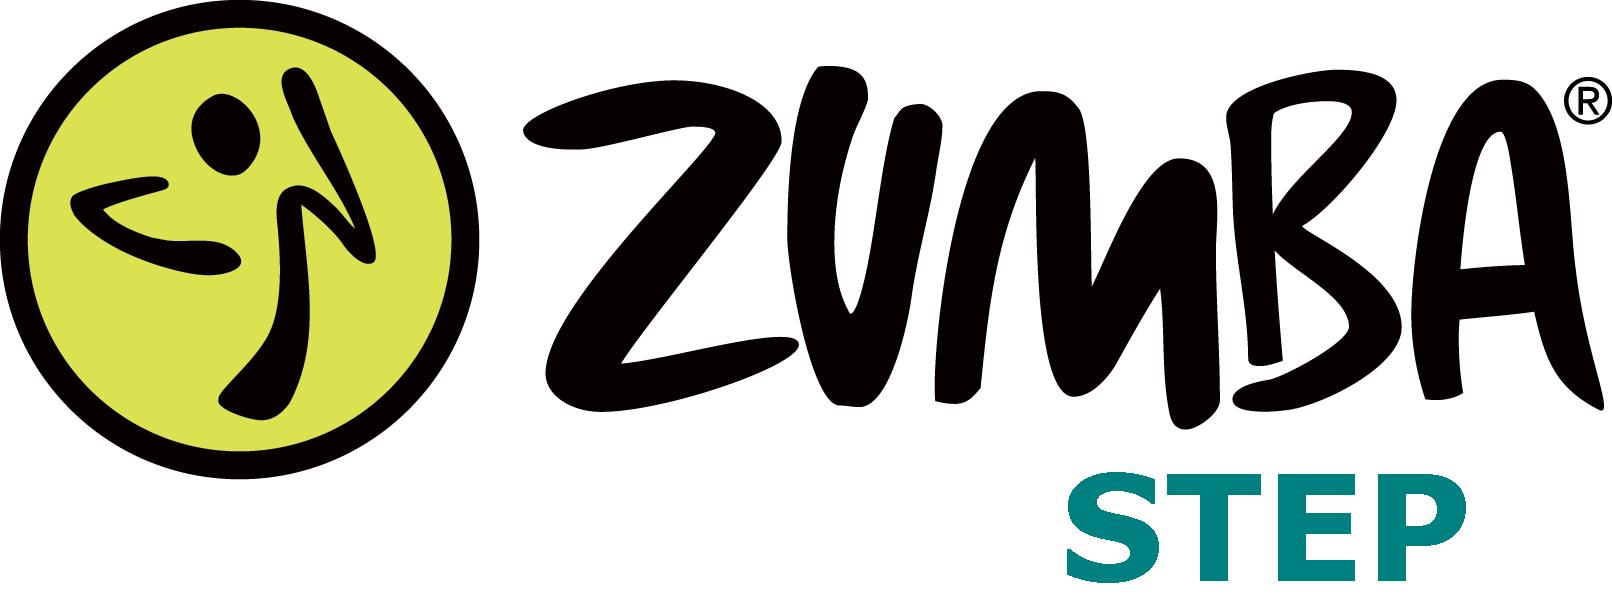 zumba step logohorz_STEPcolor-052512